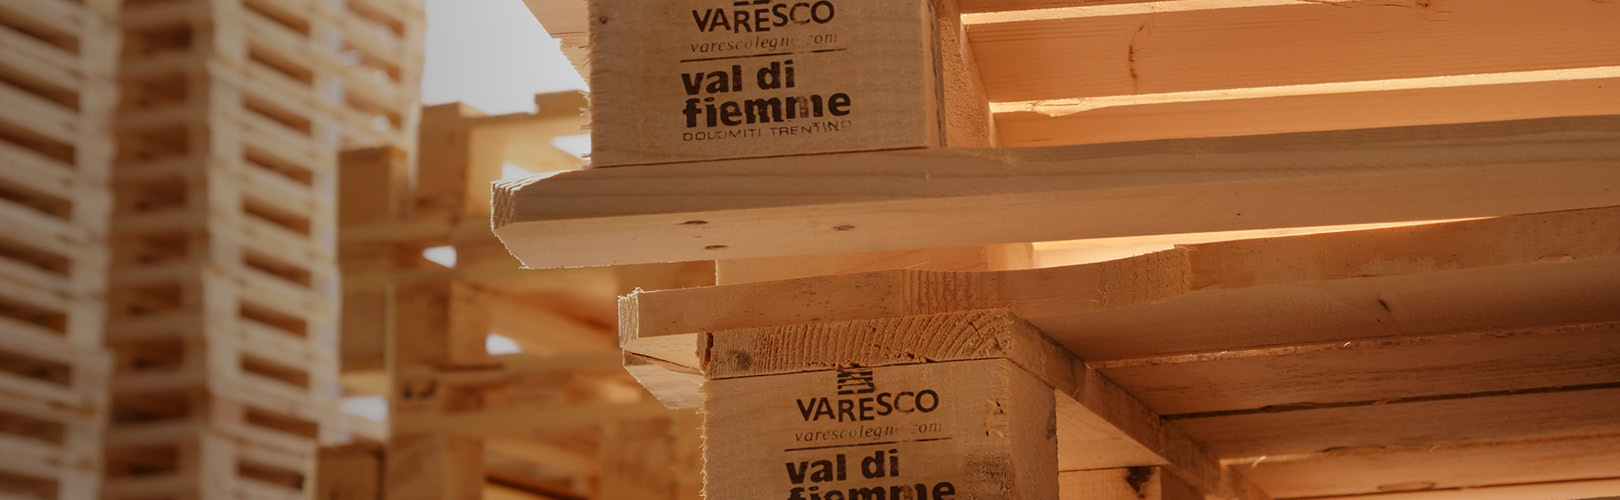 https://varescolegno.com/sites/default/files/varesco-home-01.jpg